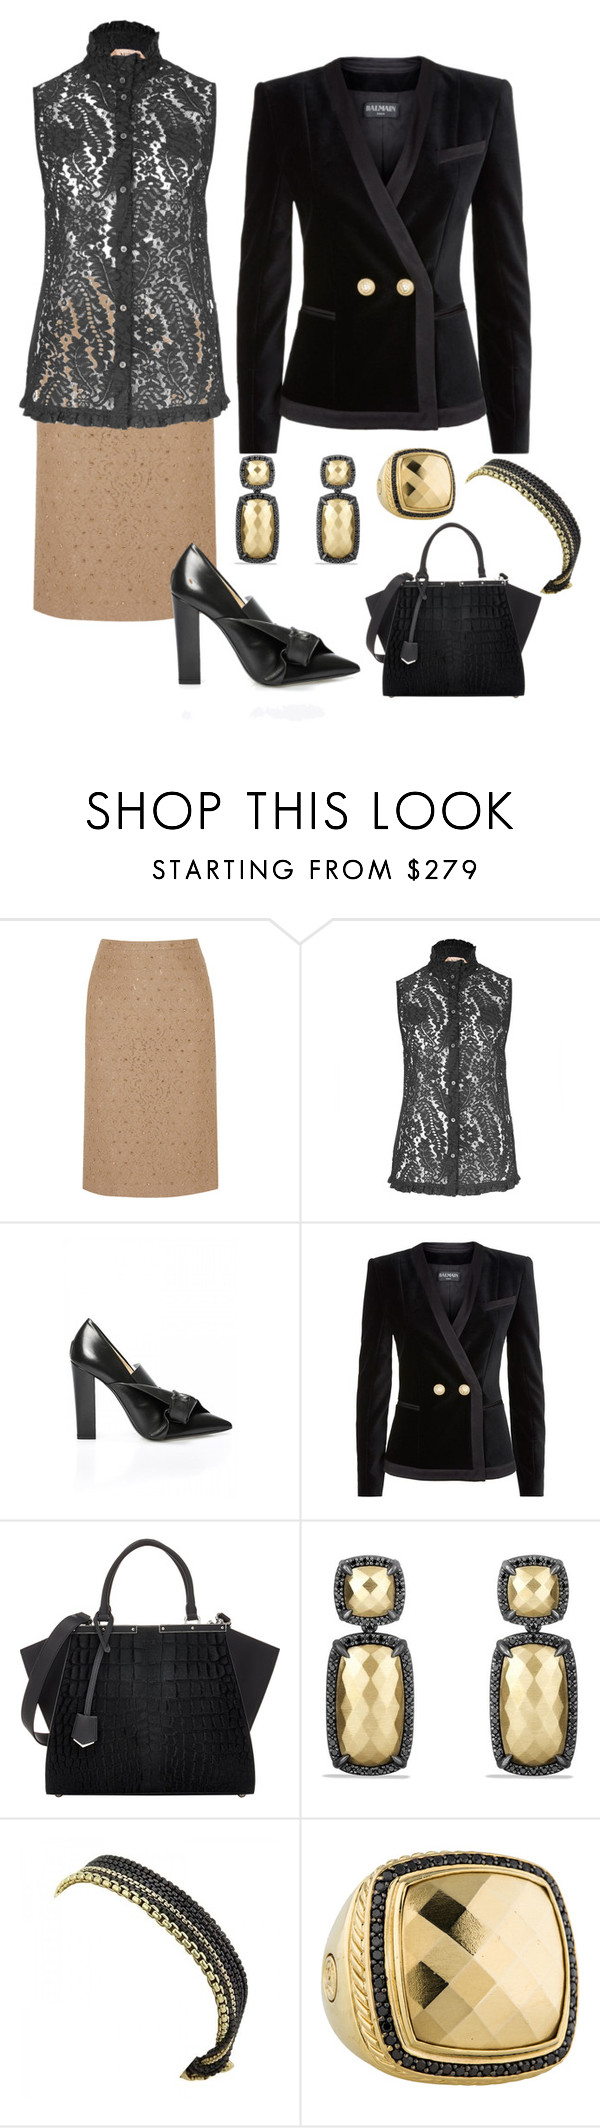 """After Work Date Night"" by karen-galves on Polyvore featuring N°21, Balmain, Fendi and David Yurman"